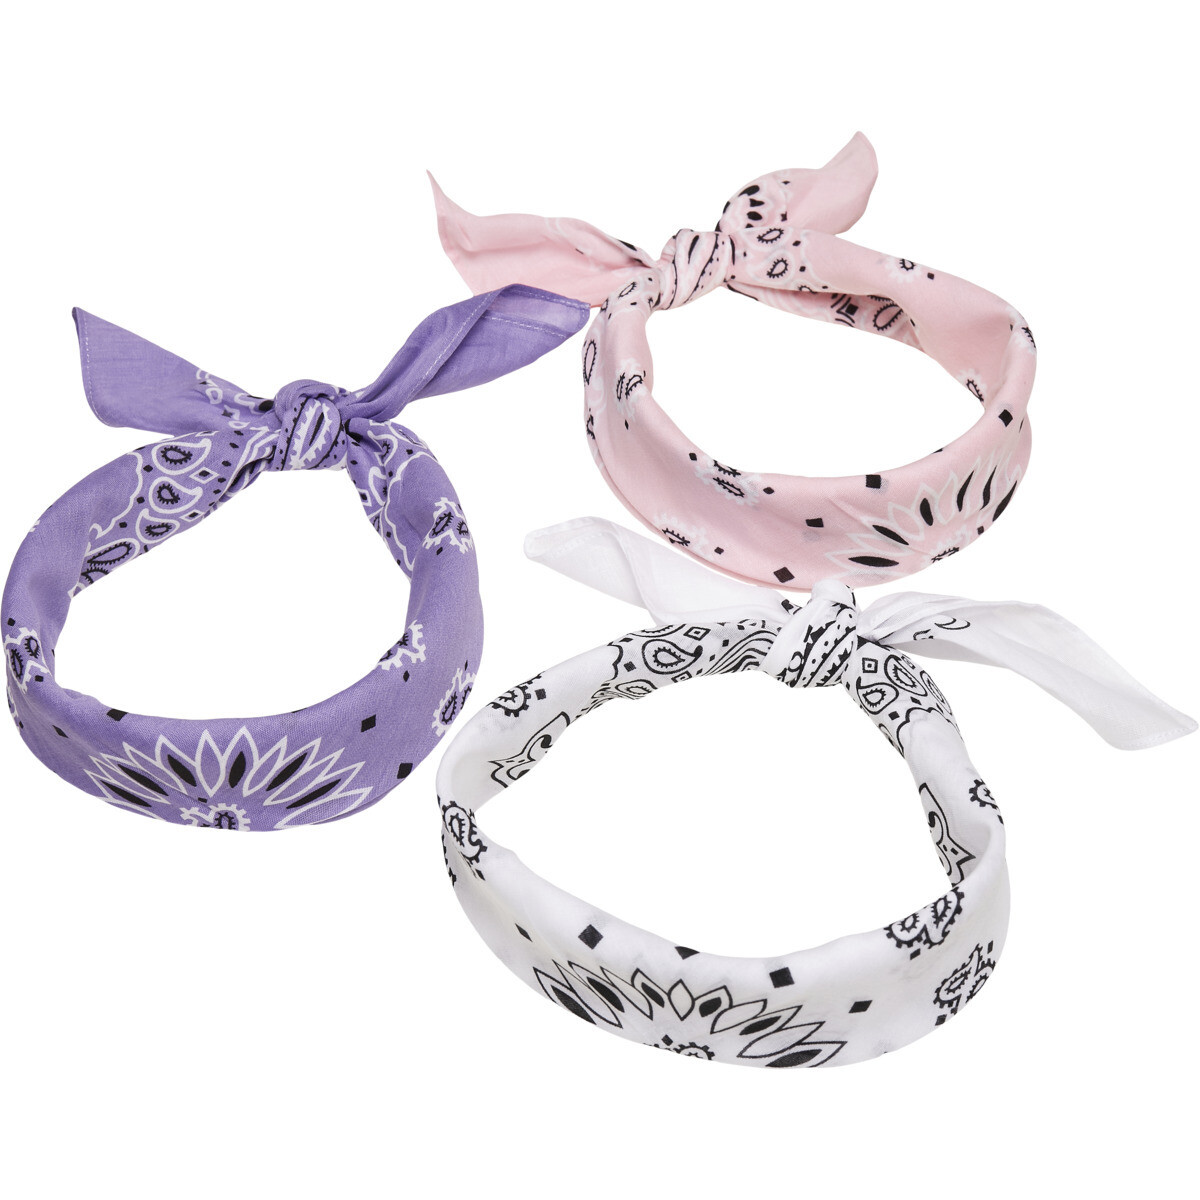 Multicolor Bandana 3-Pack - Violet/Weiss/Rosa